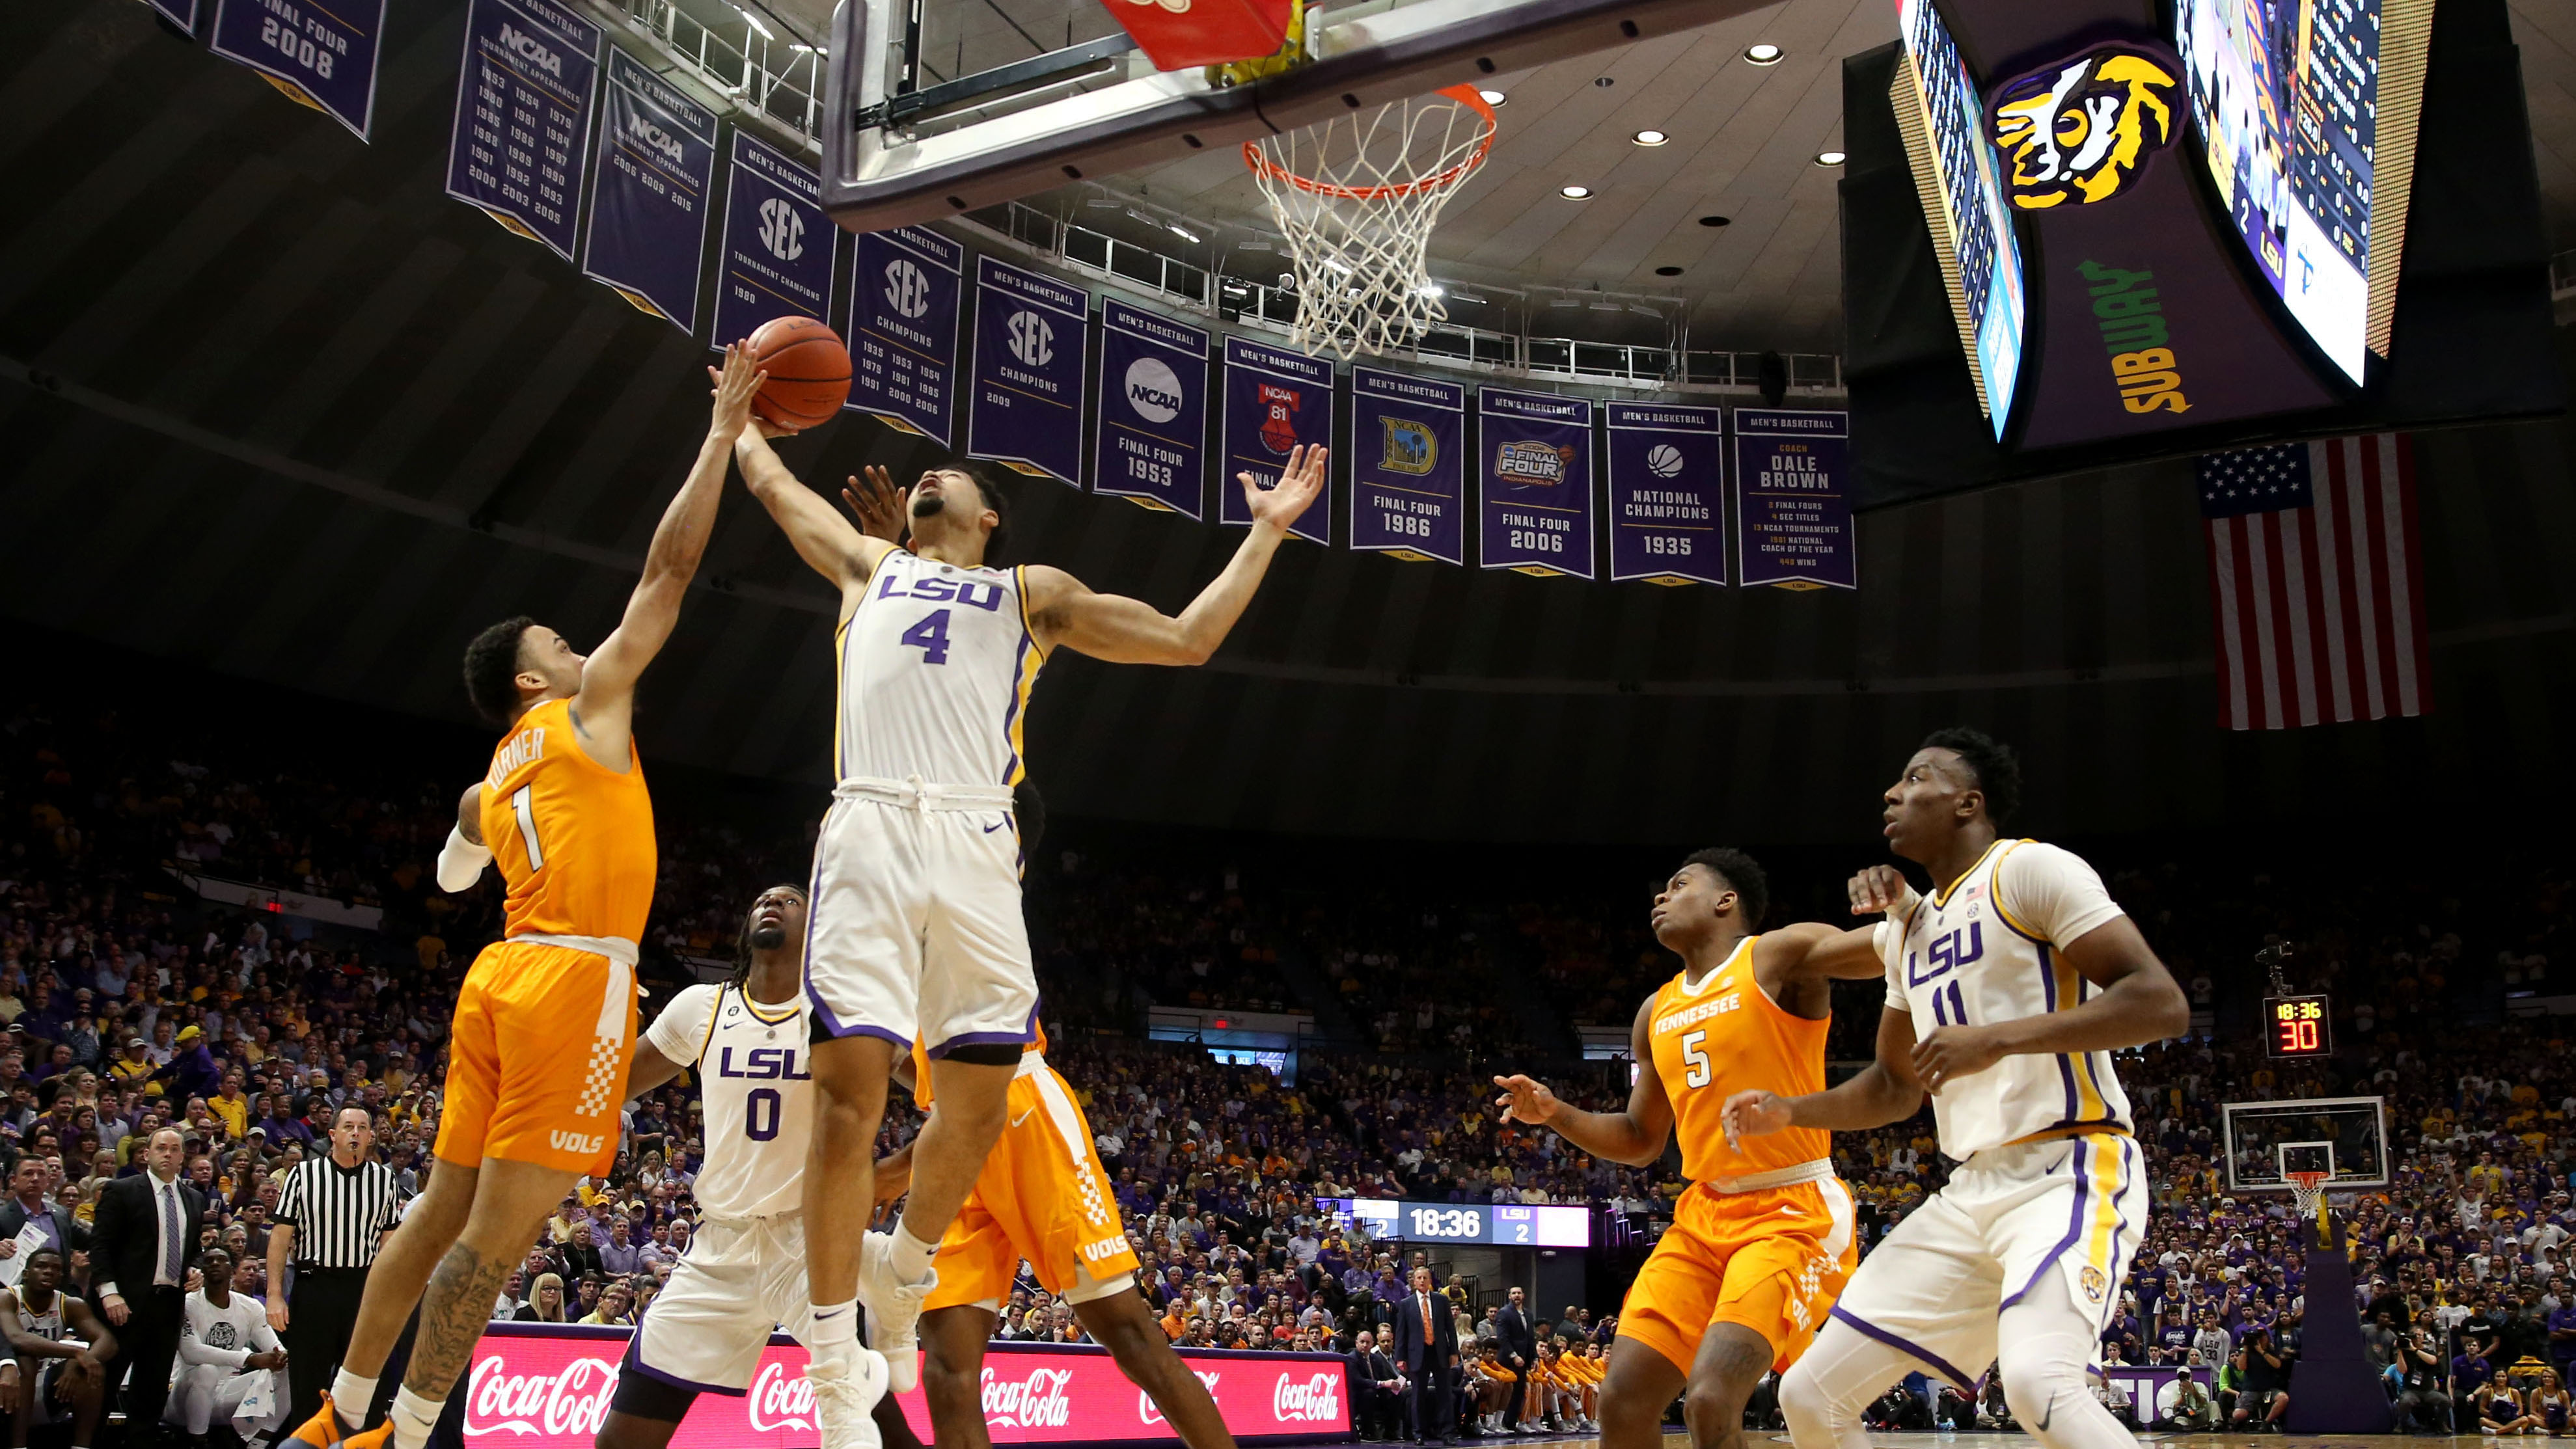 Knocks Lsu 5 No13 Tennessee Off 80 In Overtime82 Ygyb6f7